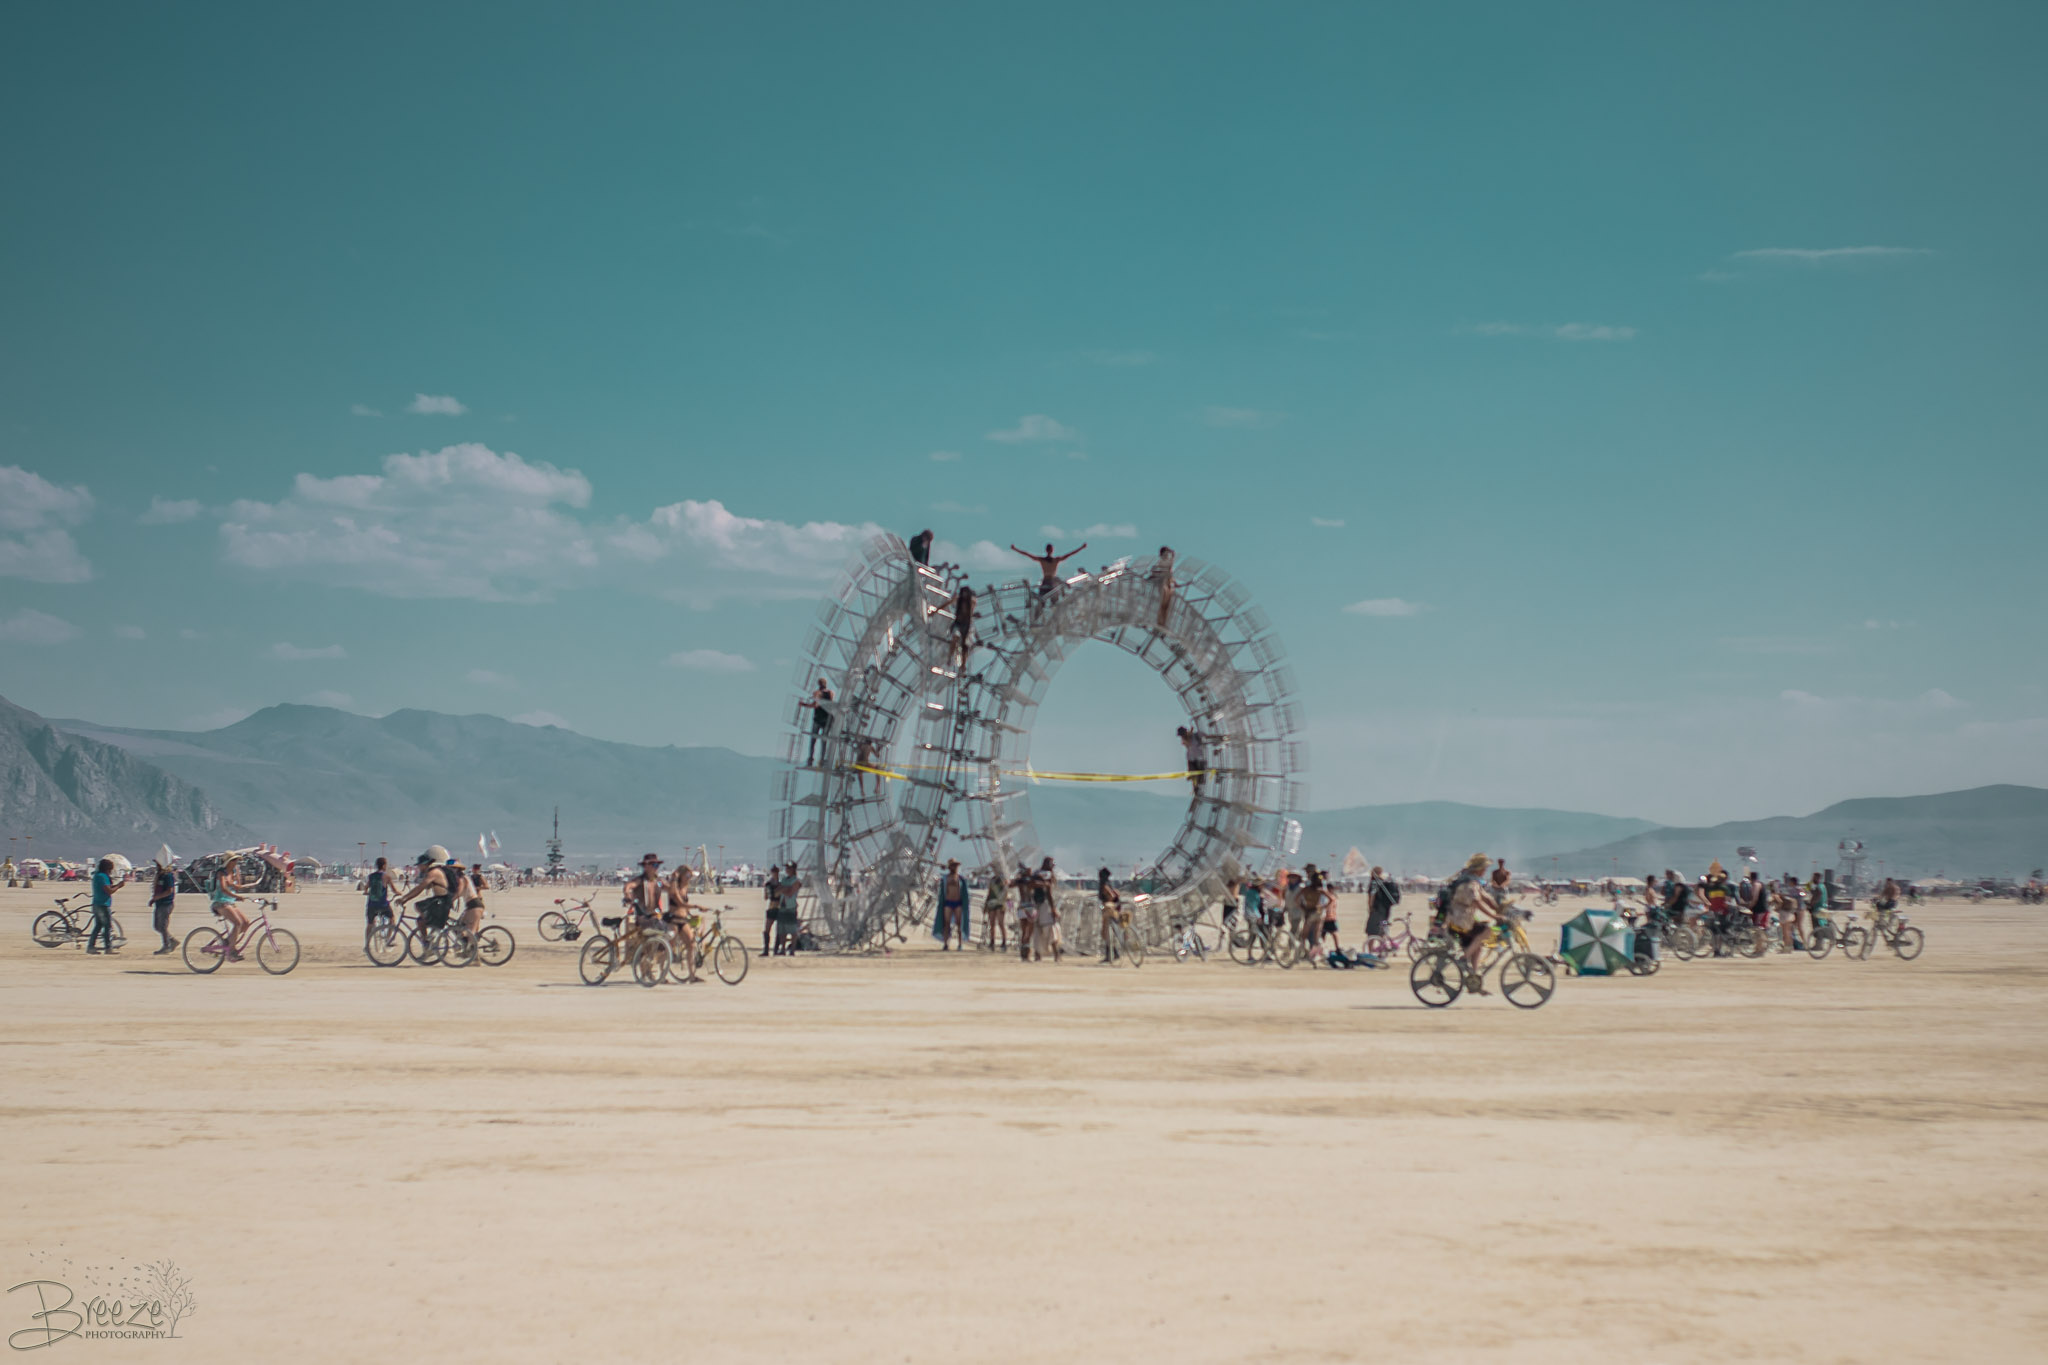 Brie'Ana Breeze Photography & Media - Burning Man 2018-4009.jpg